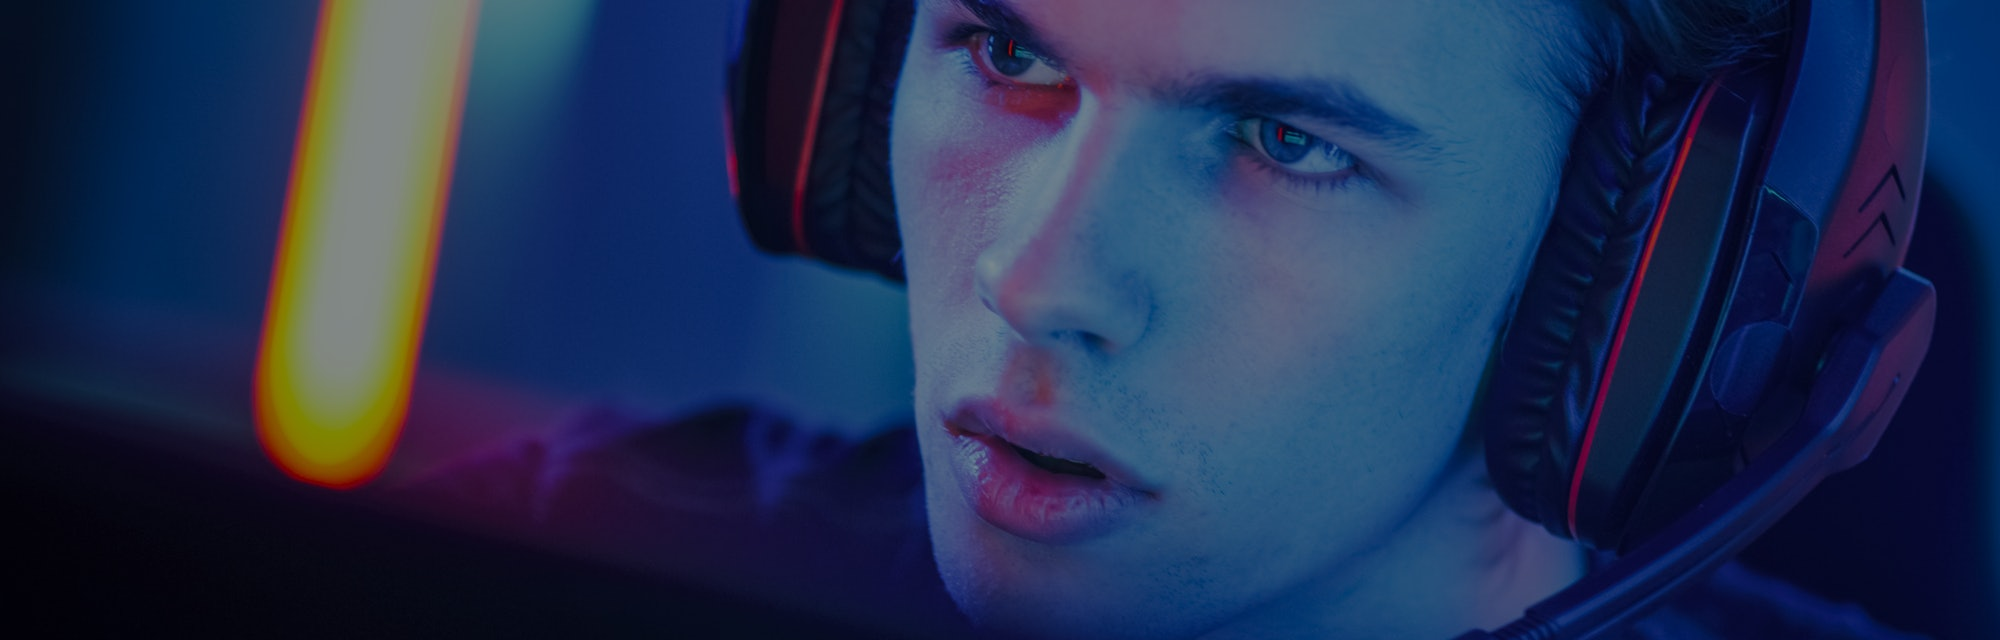 Portrait of the Young Handsome Pro Gamer Playing in Online Video Game, talks with Team Players throu...